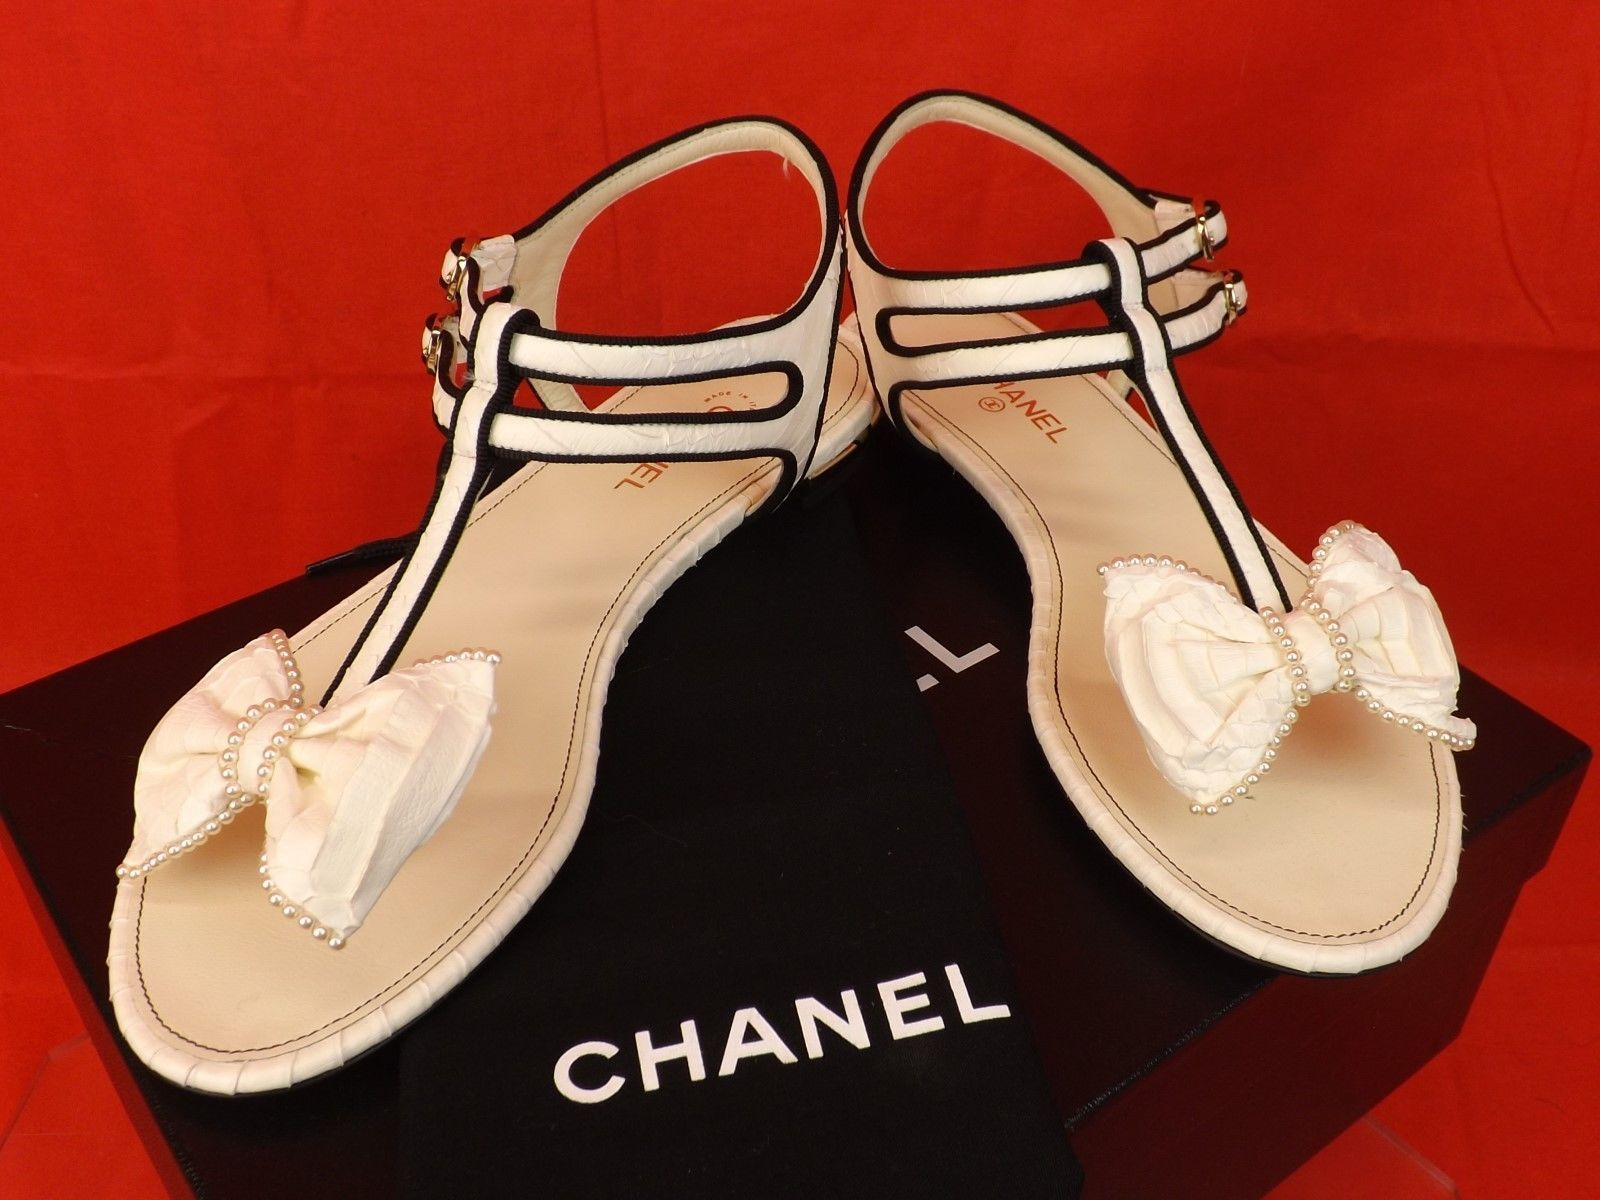 16p nib chanel white snake leather bow pearls cc thong flats sandals 37 5 1200